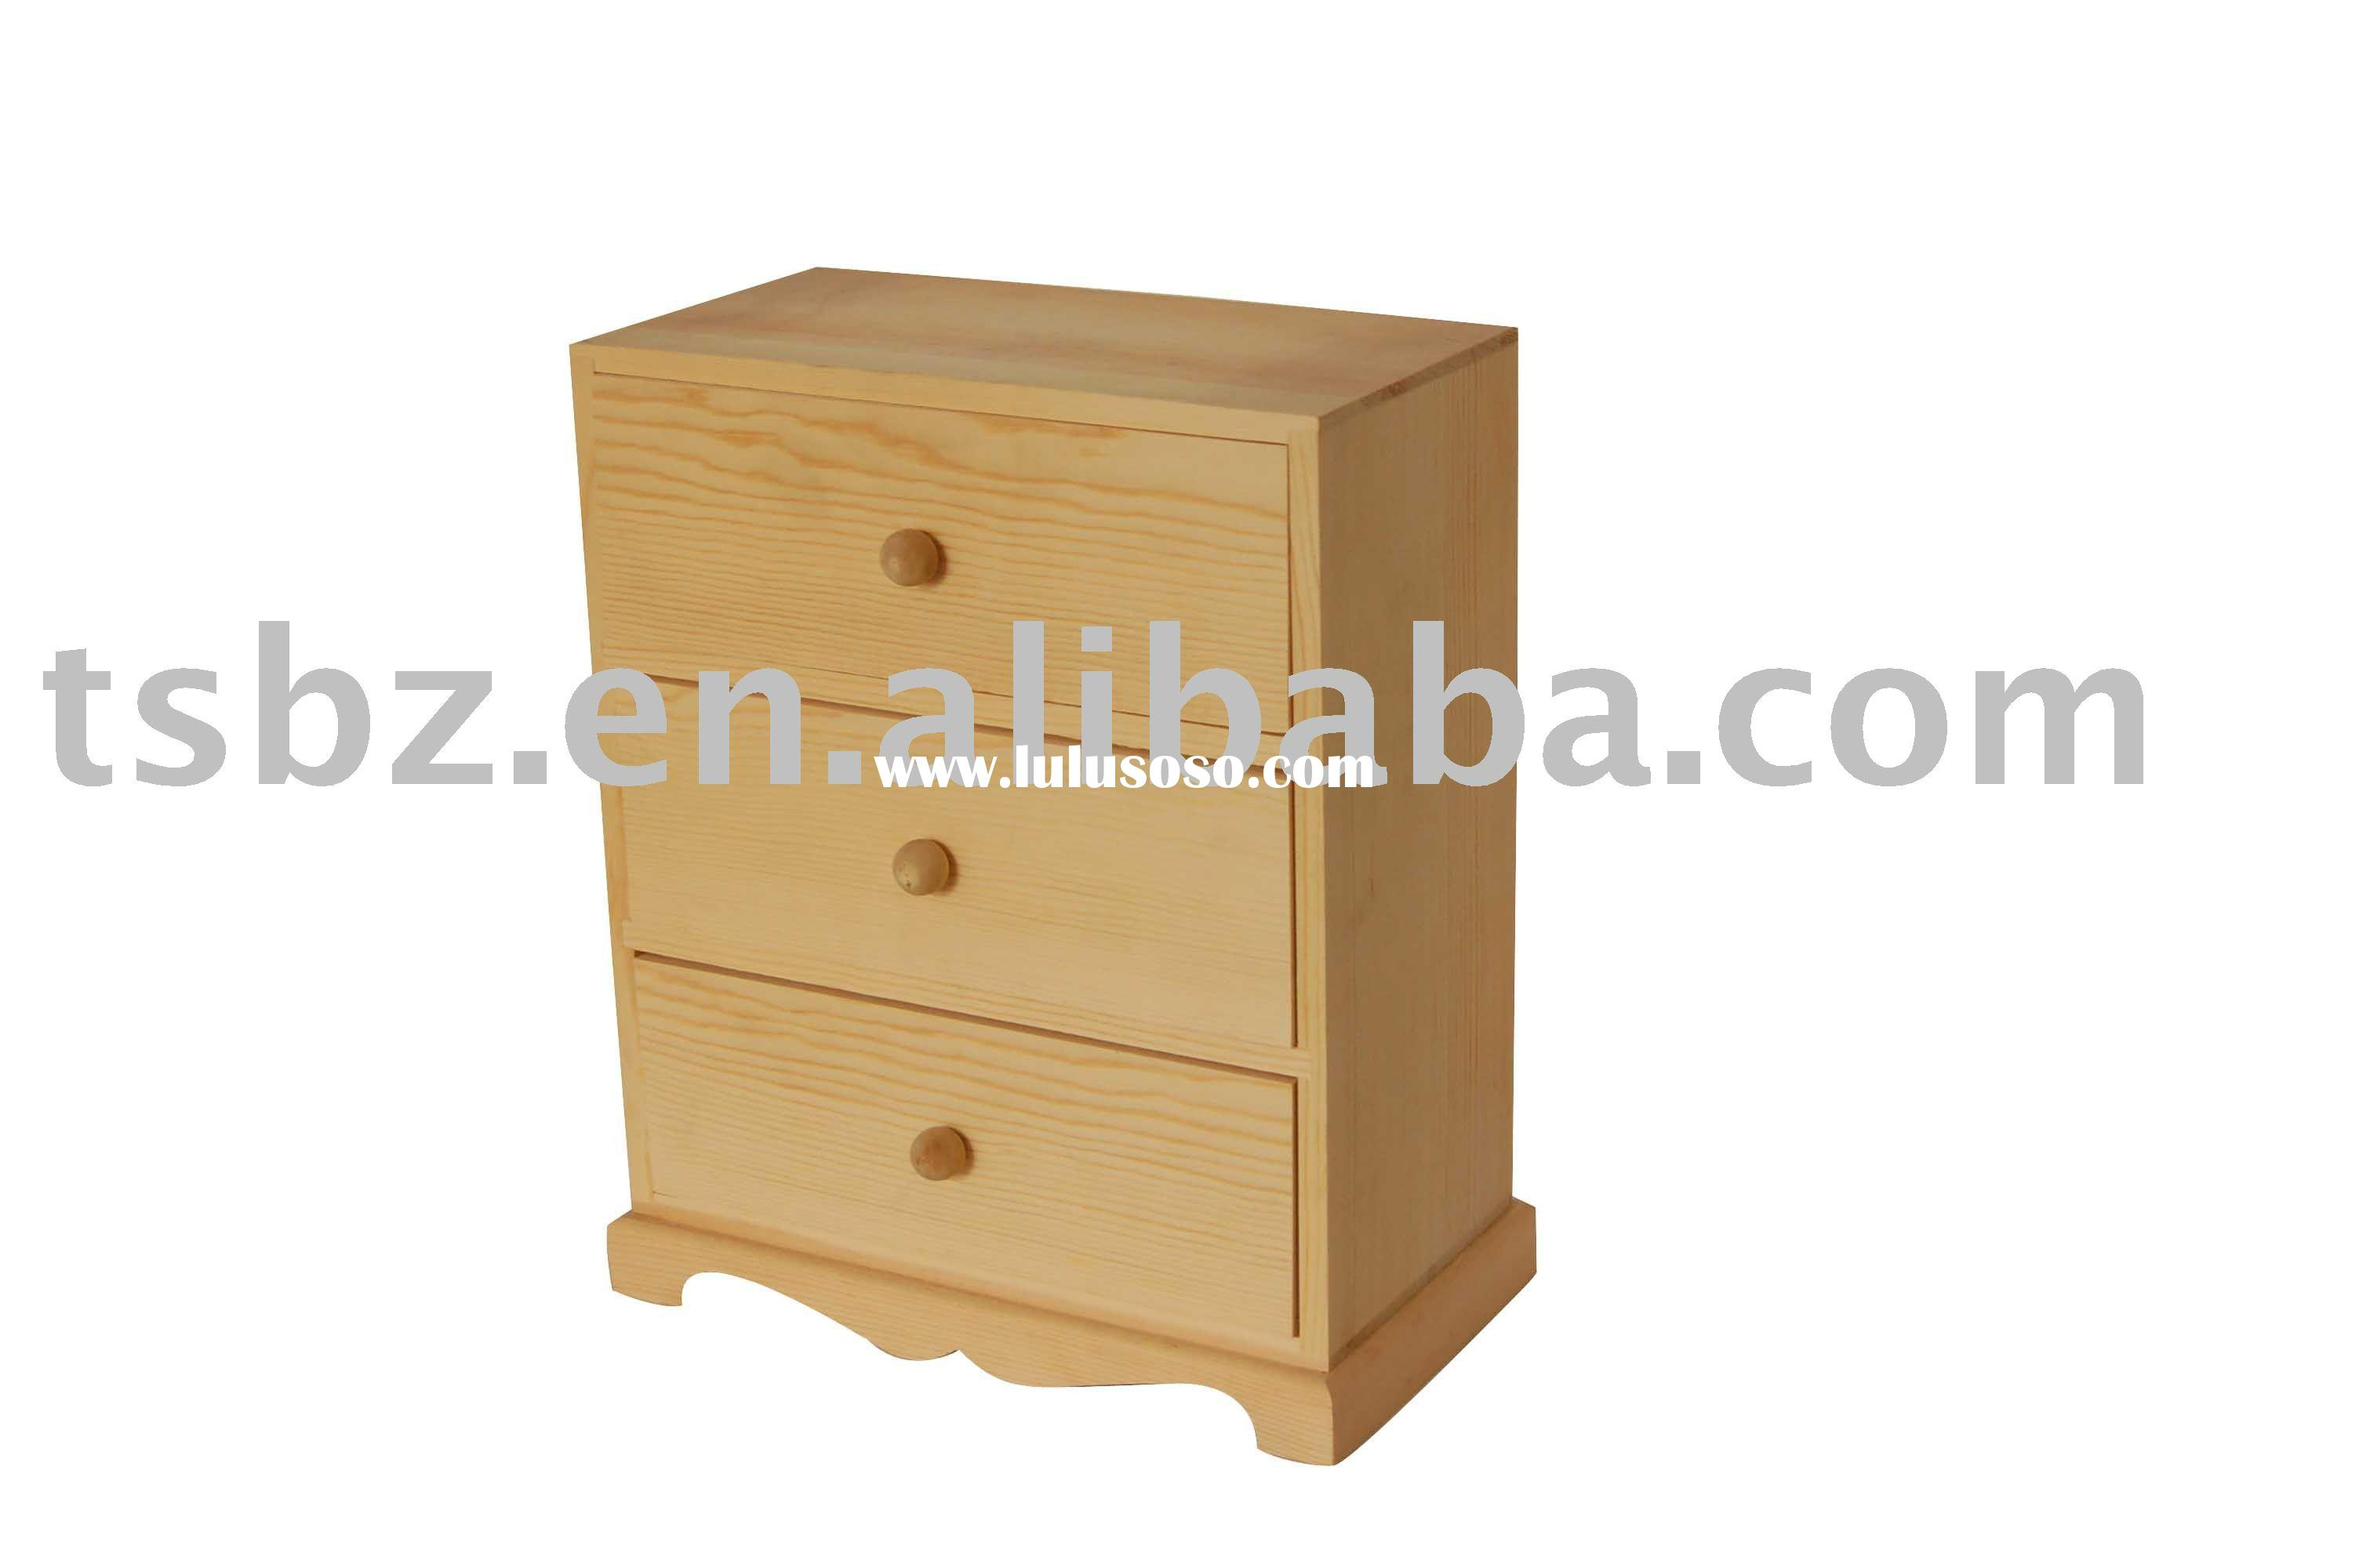 wooden craft boxes, wooden craft boxes Manufacturers in LuLuSoSo ...